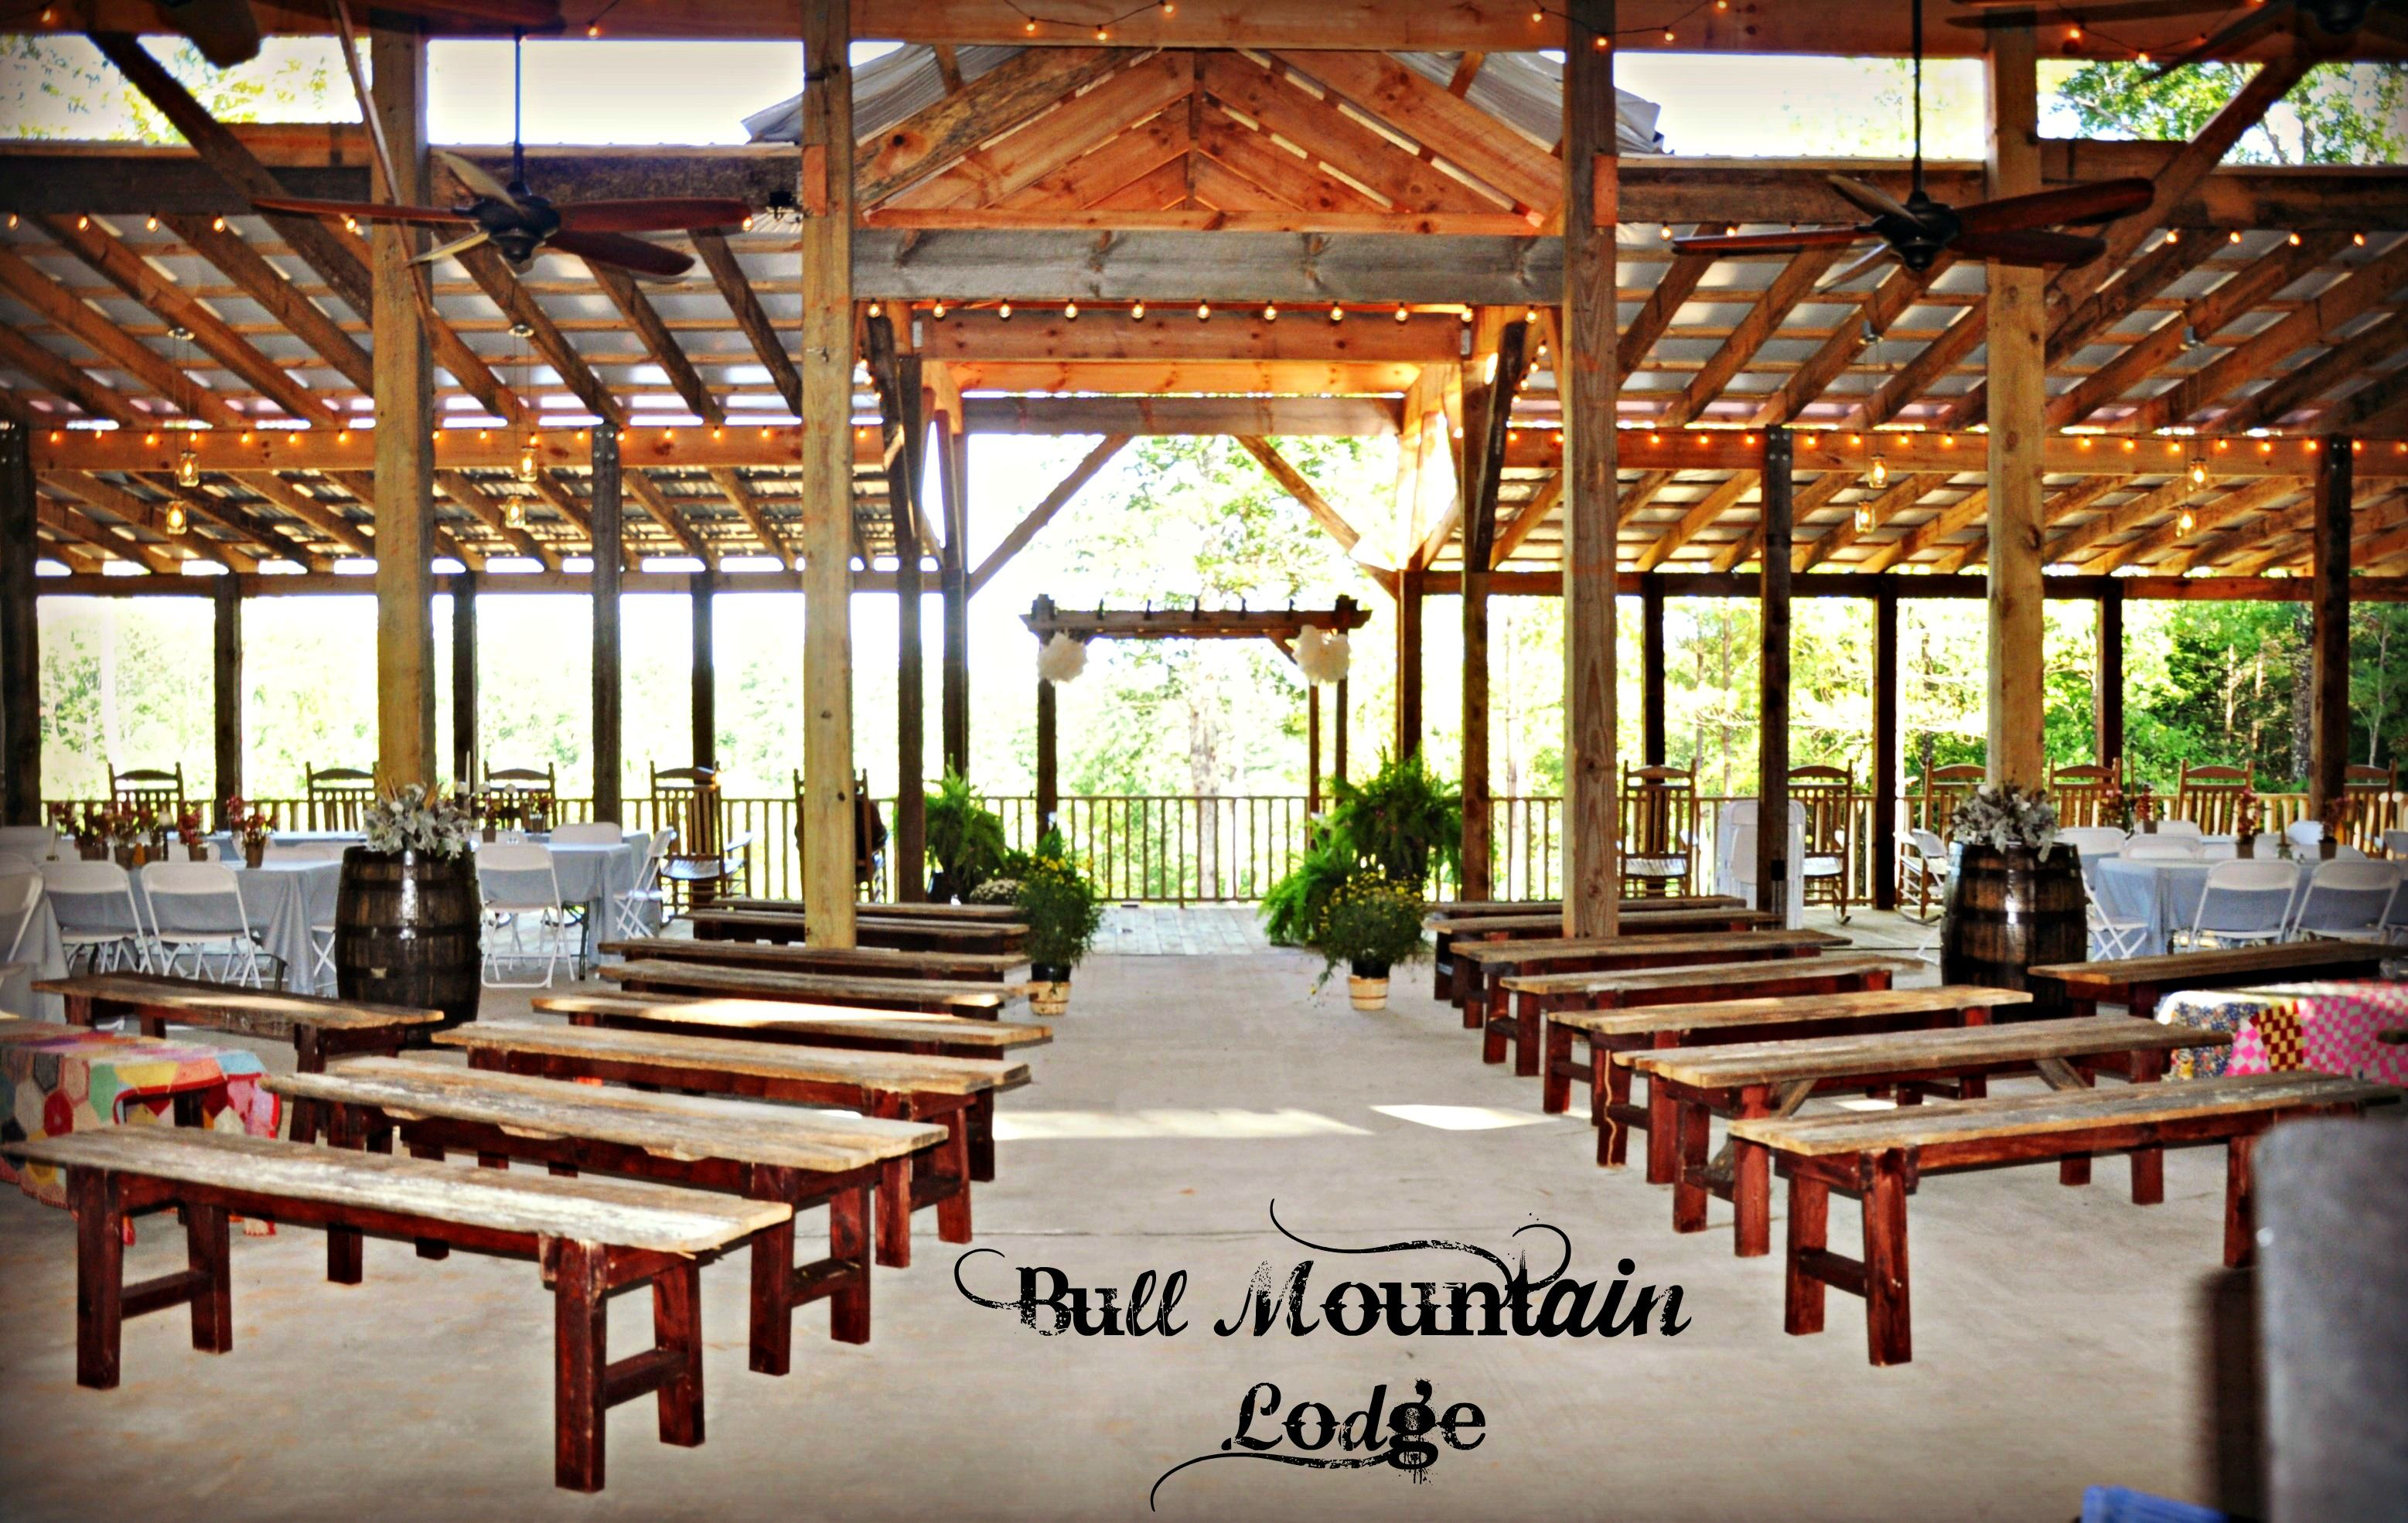 Weddings Events Bull Mountain Lodge North Georgia Wedding North Georgia Wedding Venues Georgia Wedding Venues